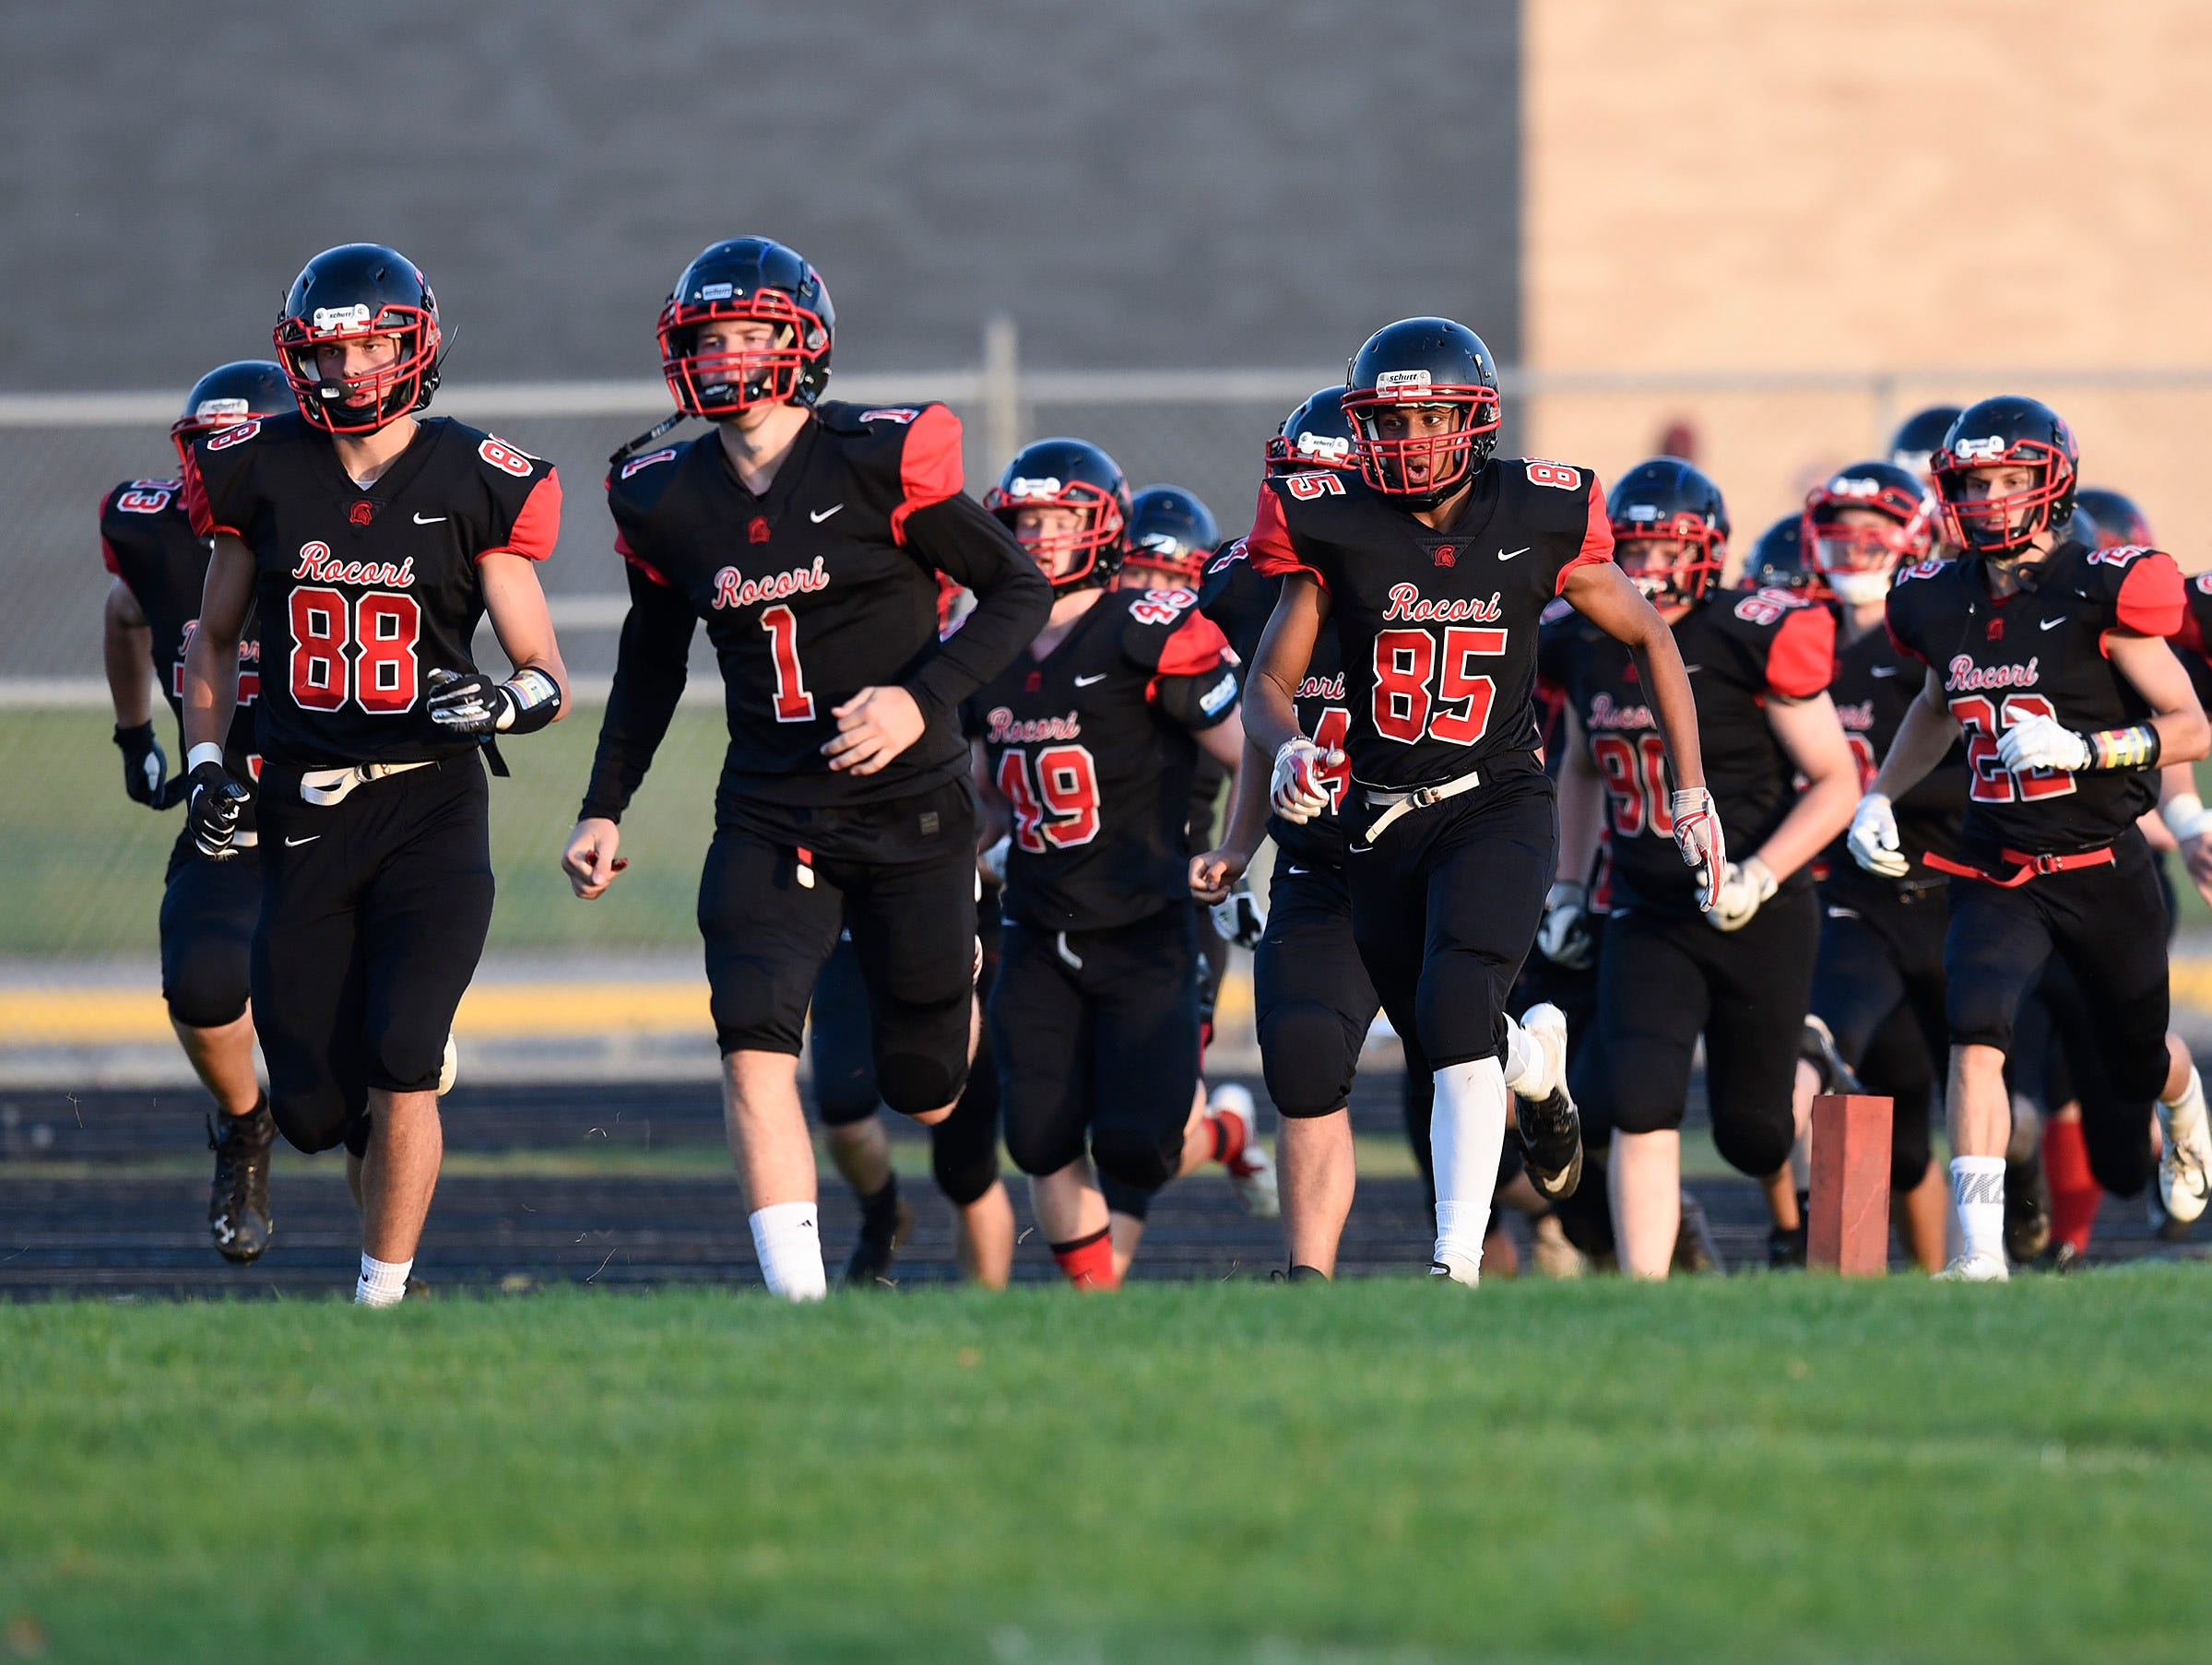 ROCORI players come onto the field for their game against Becker Friday, Sept. 14, in Cold Spring.